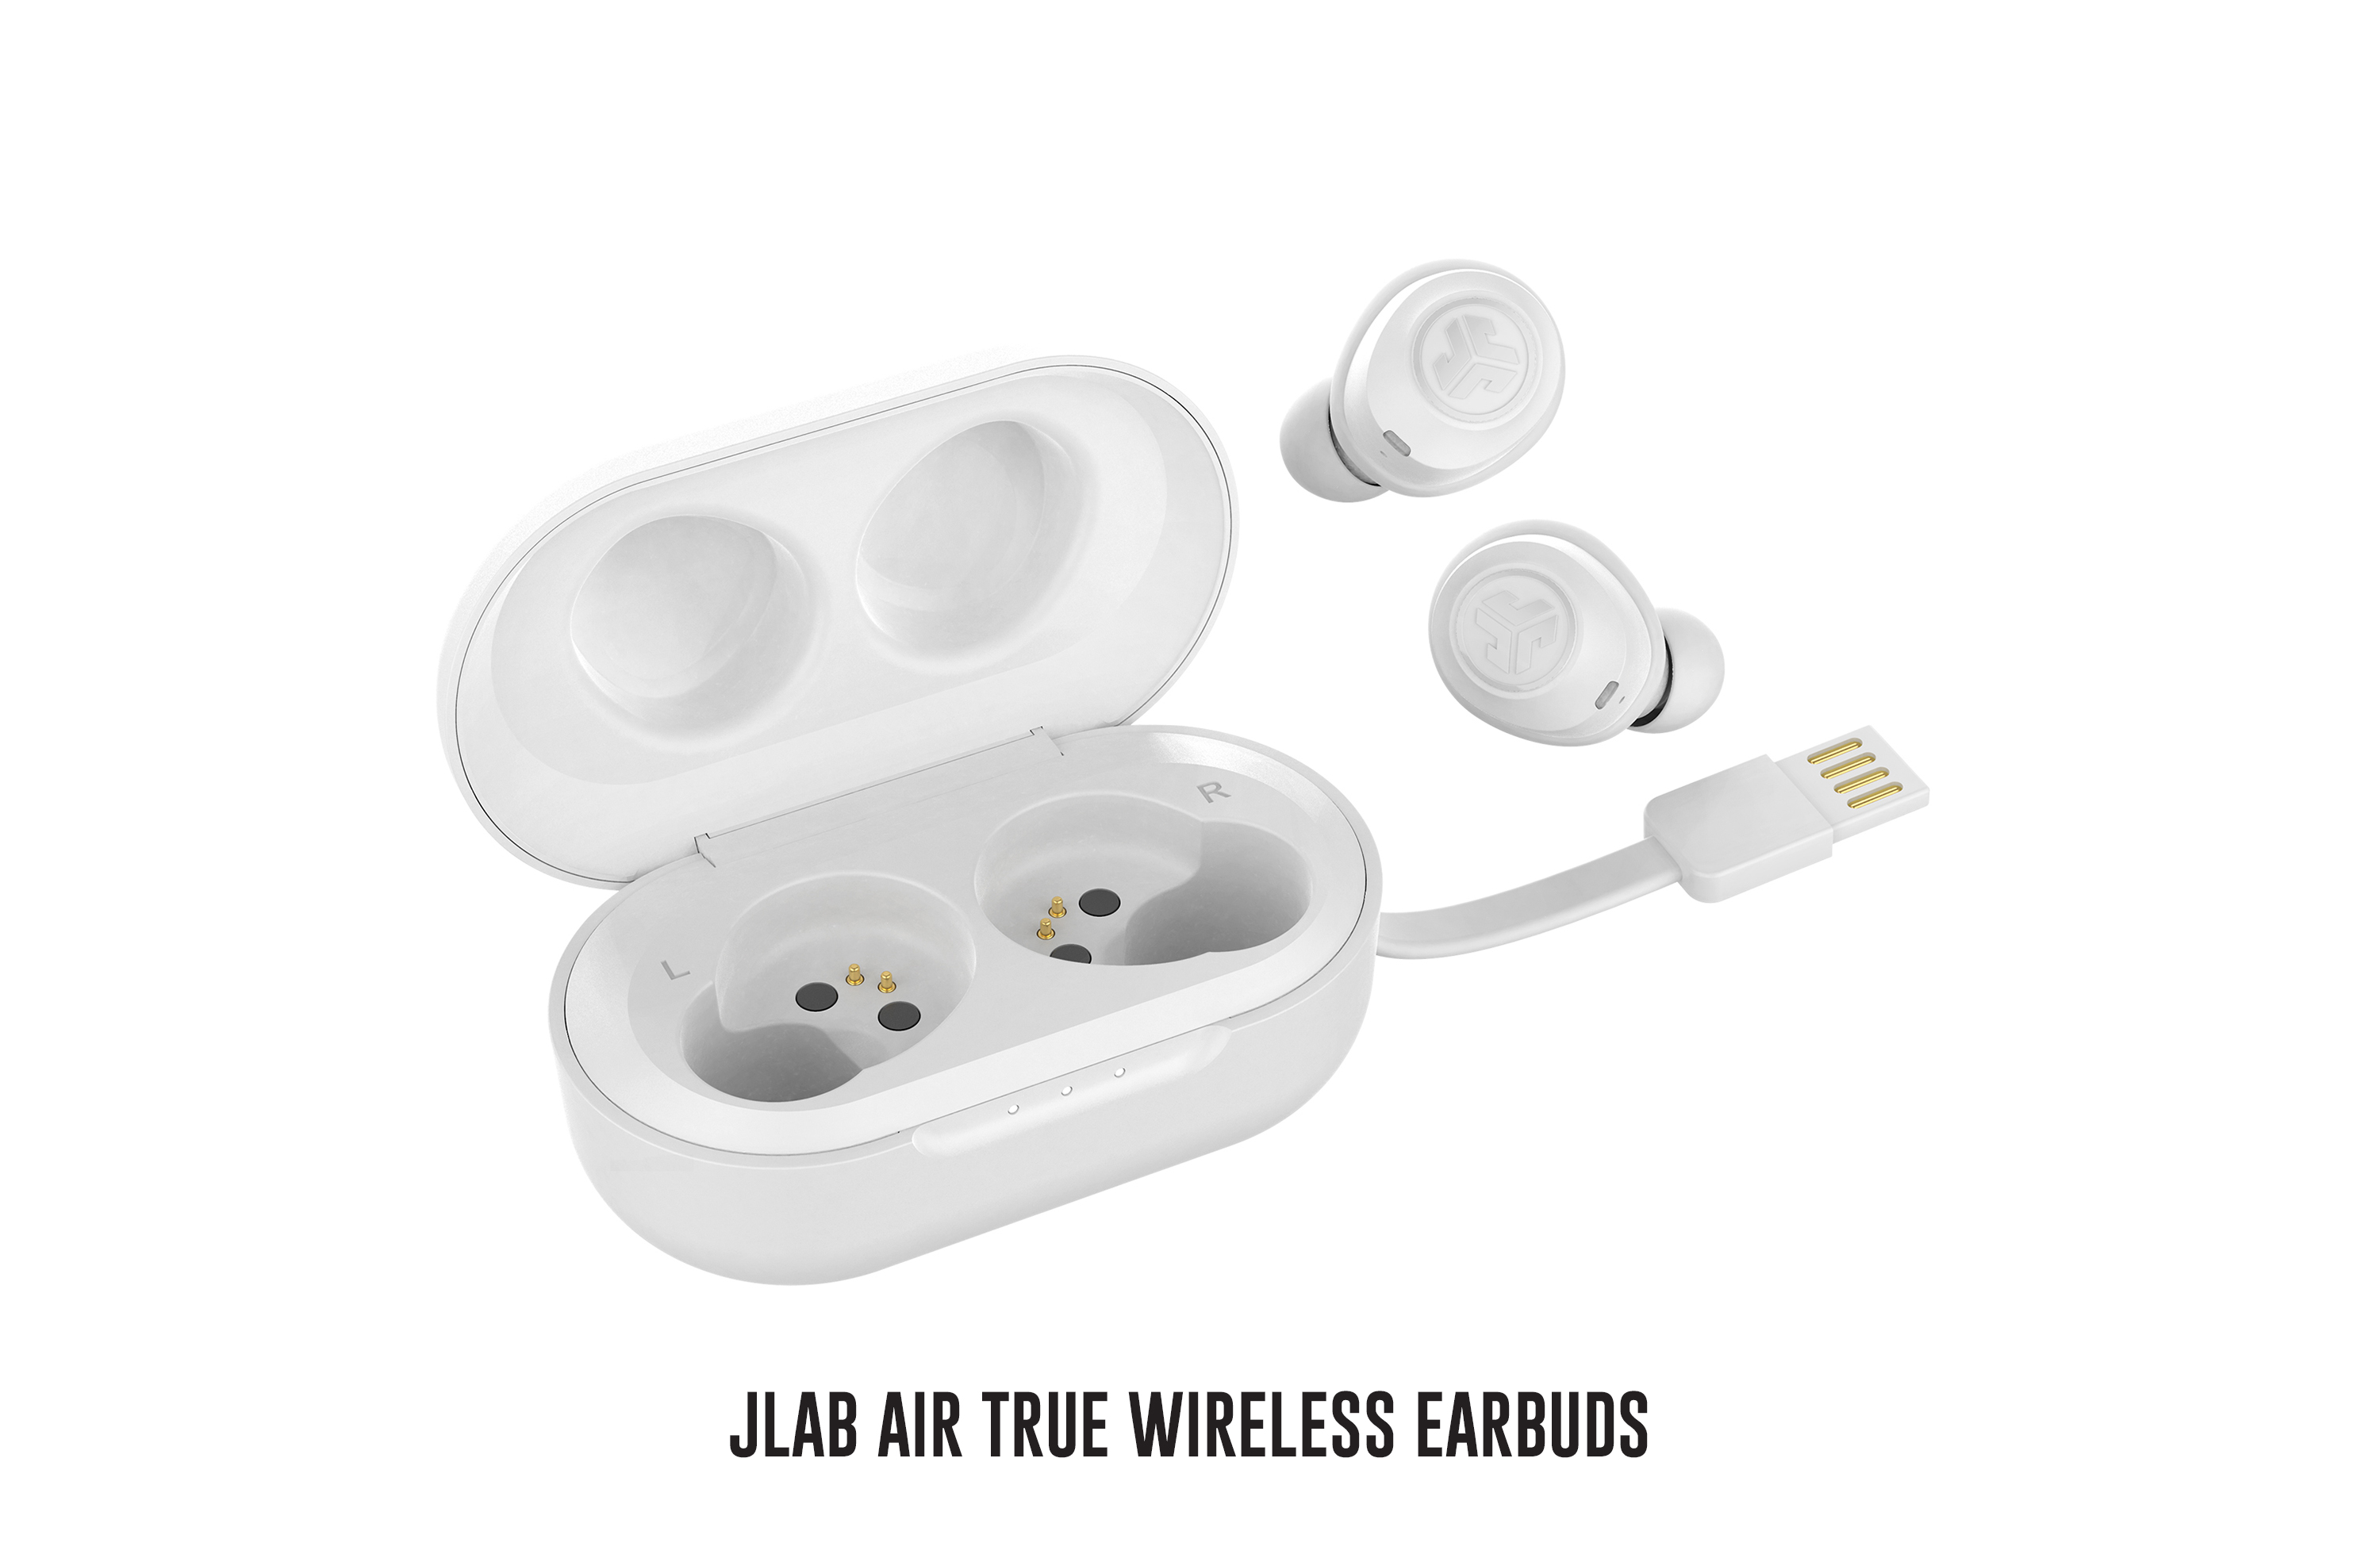 JLab Air True wireless earbuds